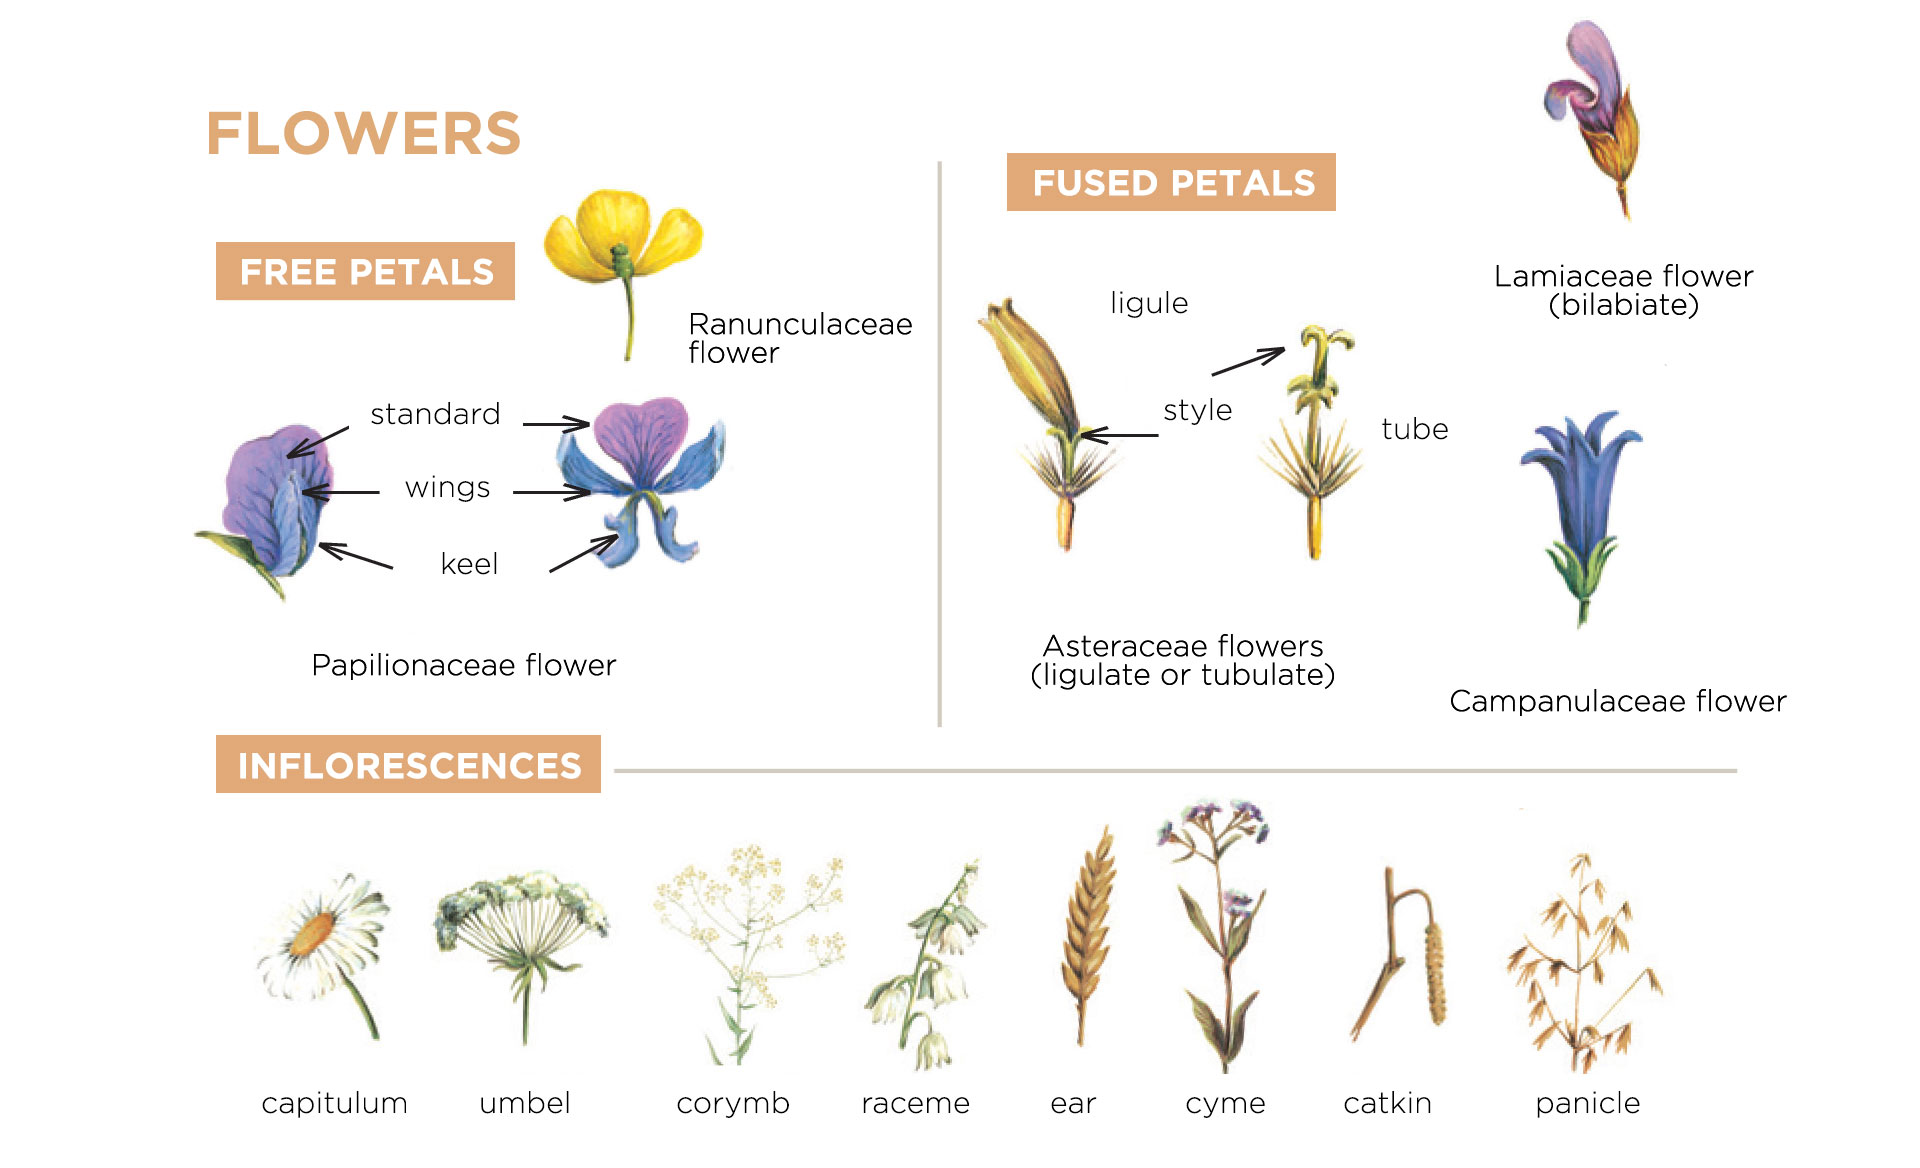 botany lessons : flowers